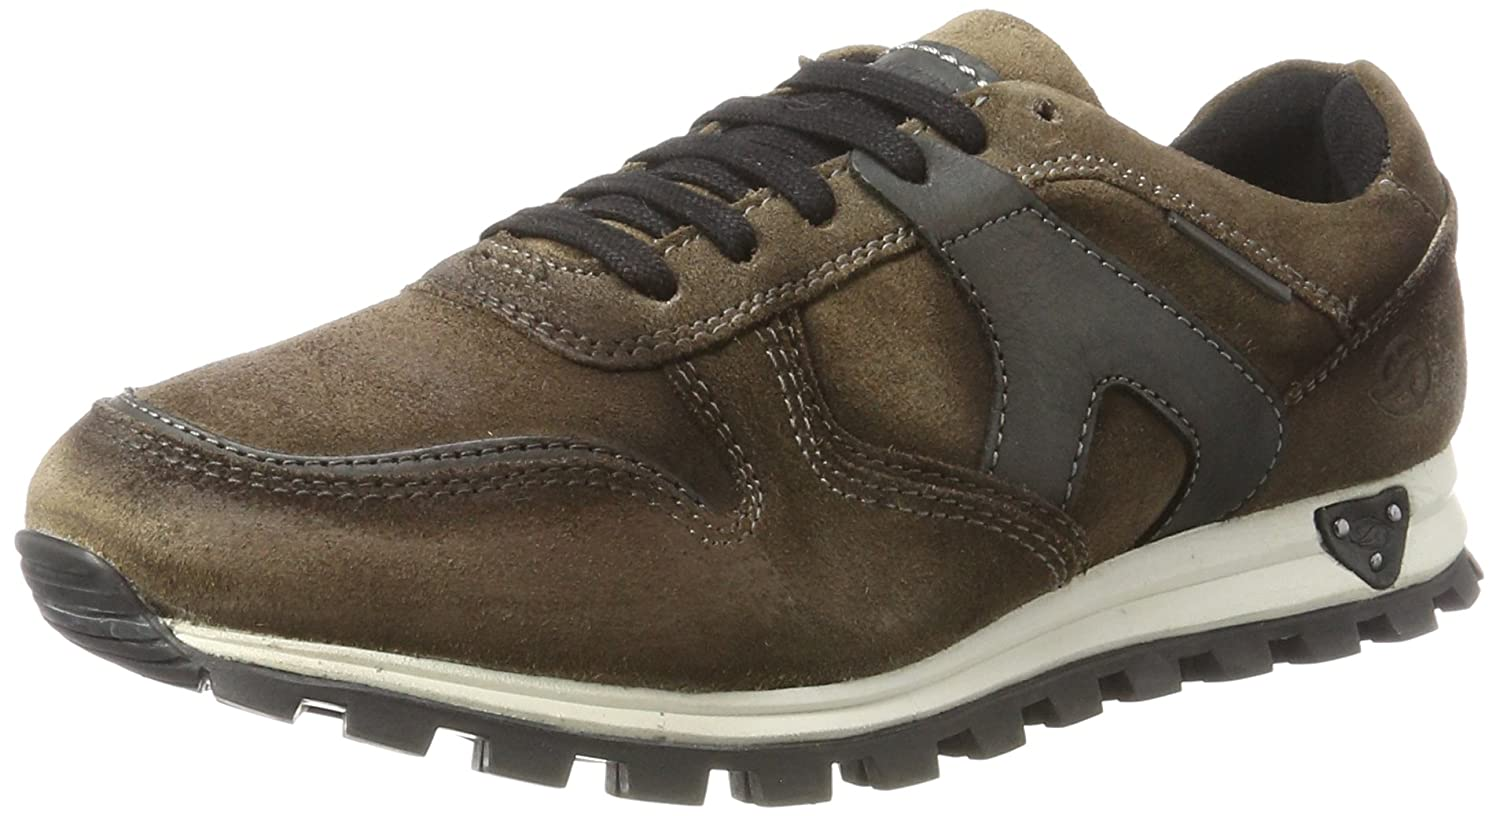 41jf002-208430, Sneakers Basses Homme, Gris (Taupe), 42 EUDockers by Gerli